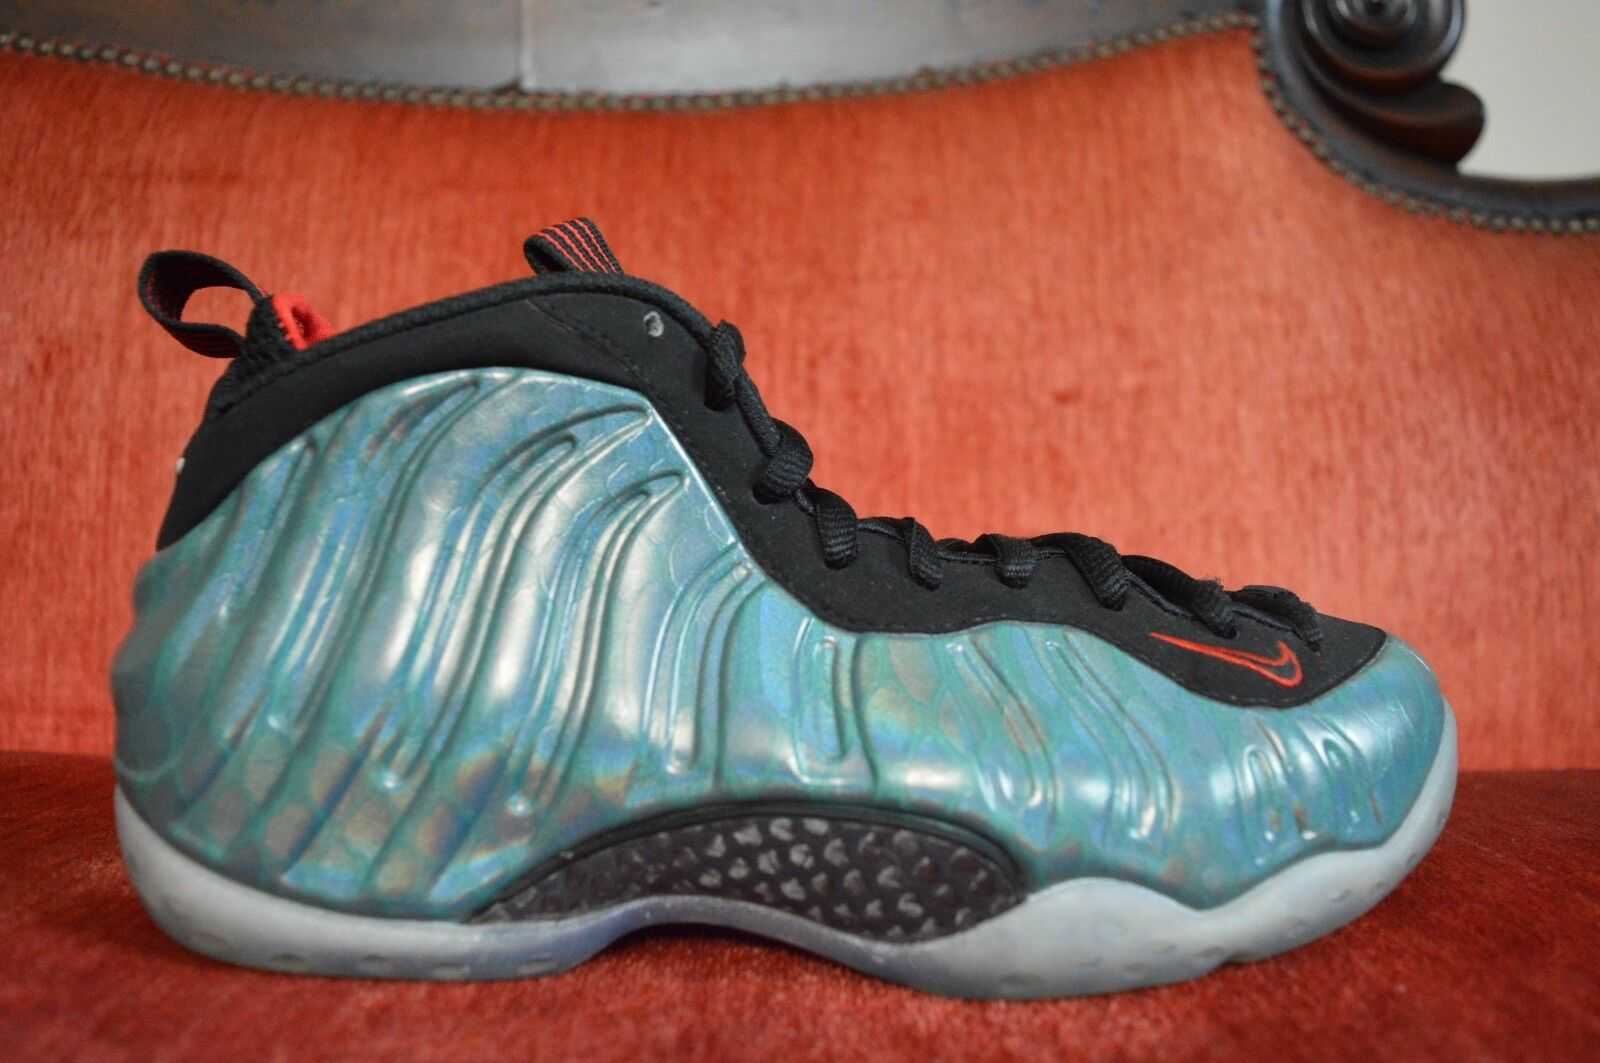 Nike Air Foamposite One Premium PRM Gone Fishing Size 7.5 575420-300